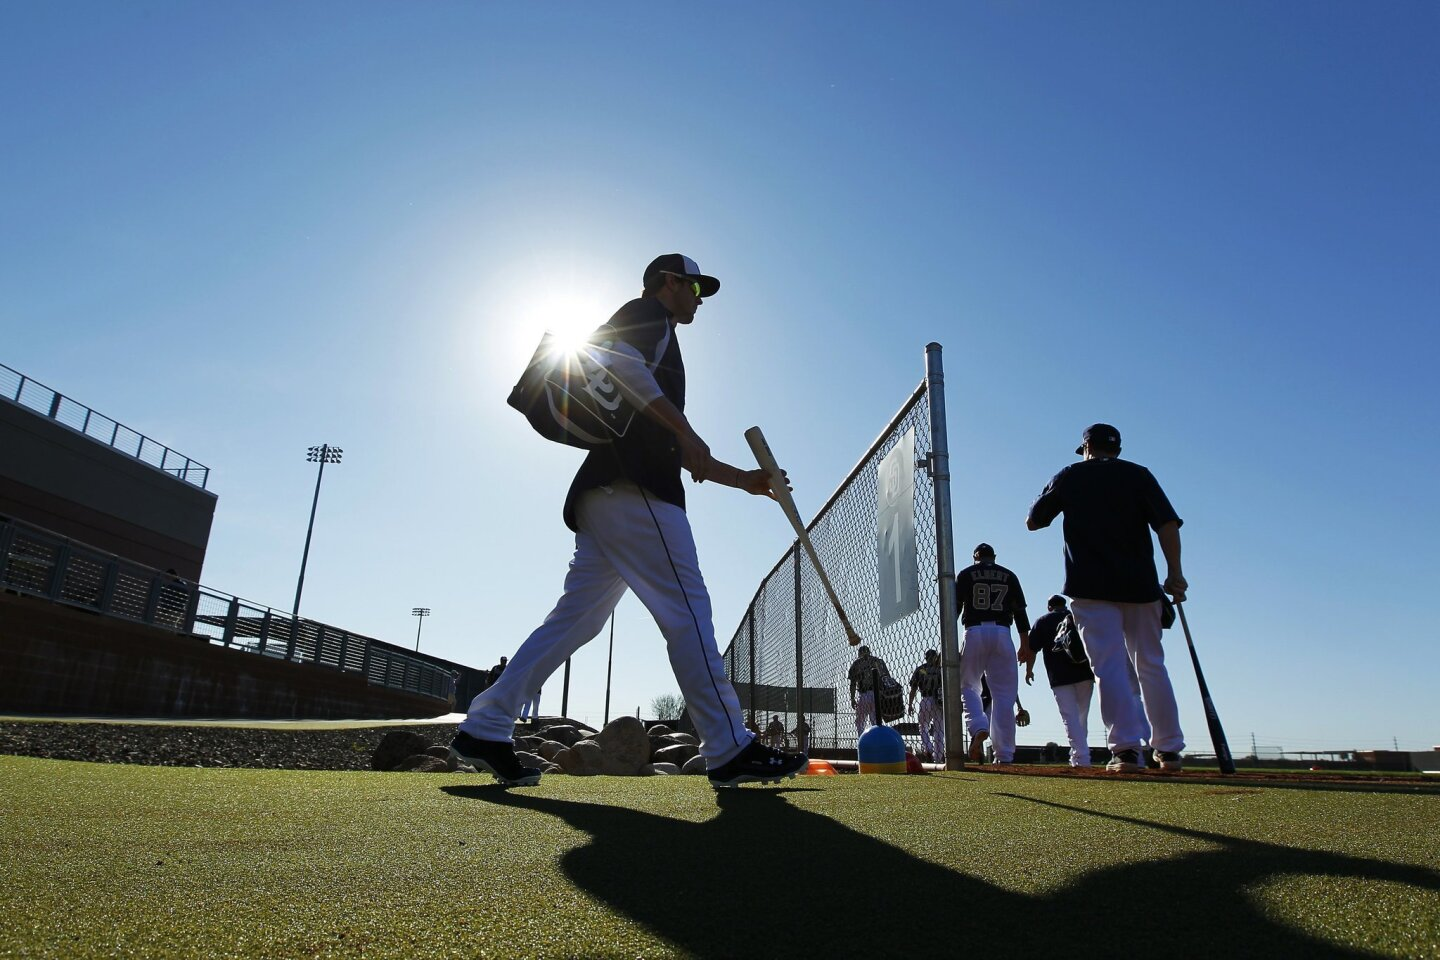 Padres players take the field for a spring training practice.